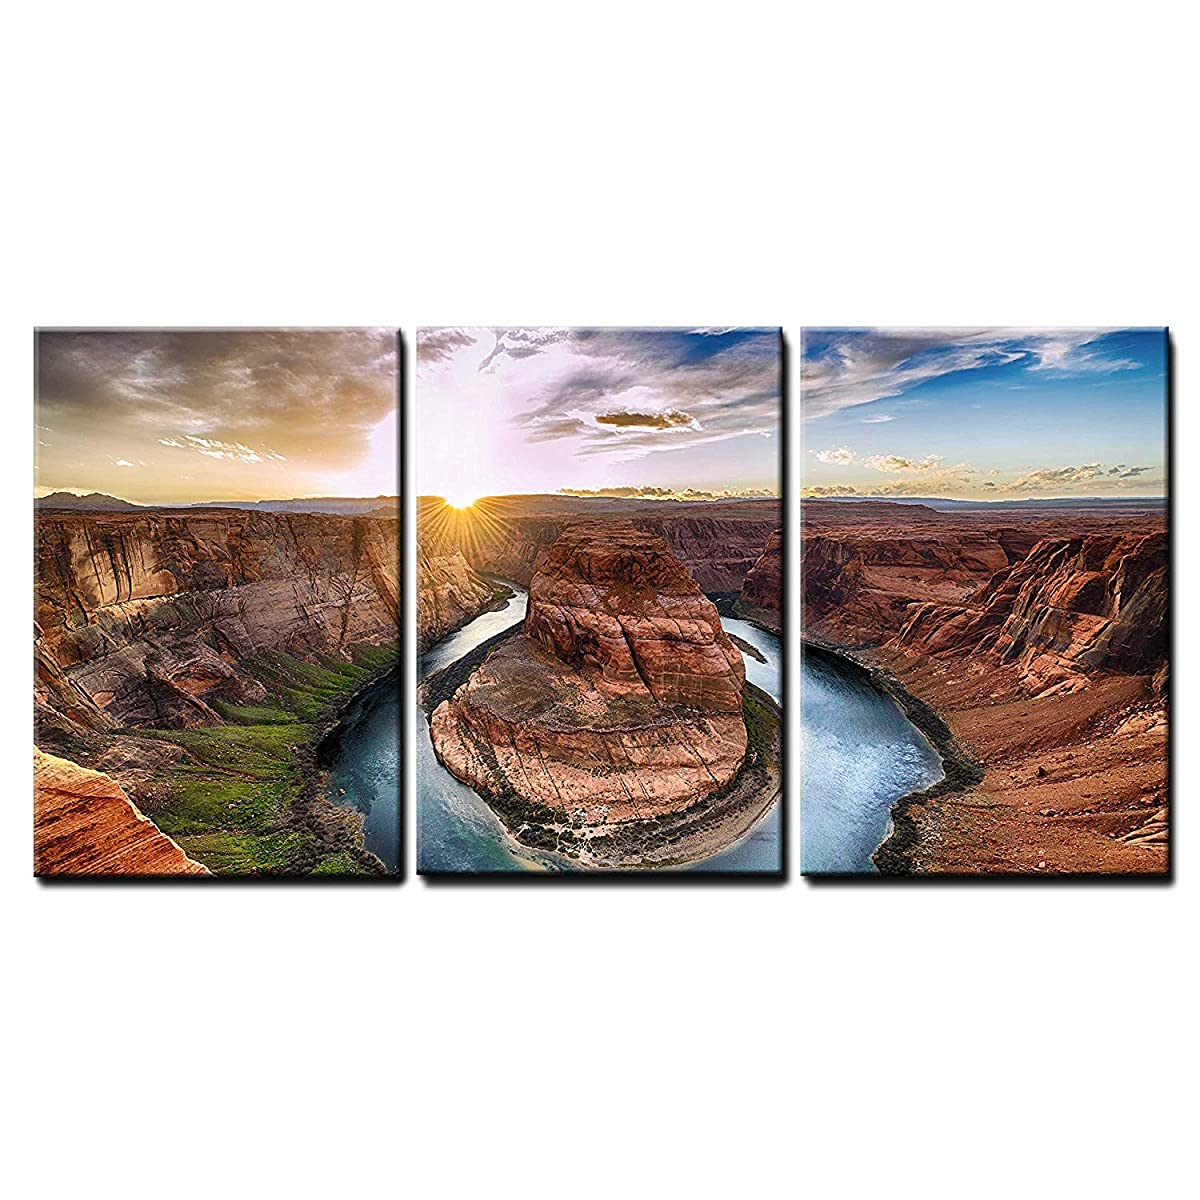 """wall26 - 3 Piece Canvas Wall Art - Sunset Moment at Horseshoe Bend, Colorado River, Grand Canyon National Park, Arizona USA - Modern Home Decor Stretched and Framed Ready to Hang - 16""""x24""""x3 Panels"""